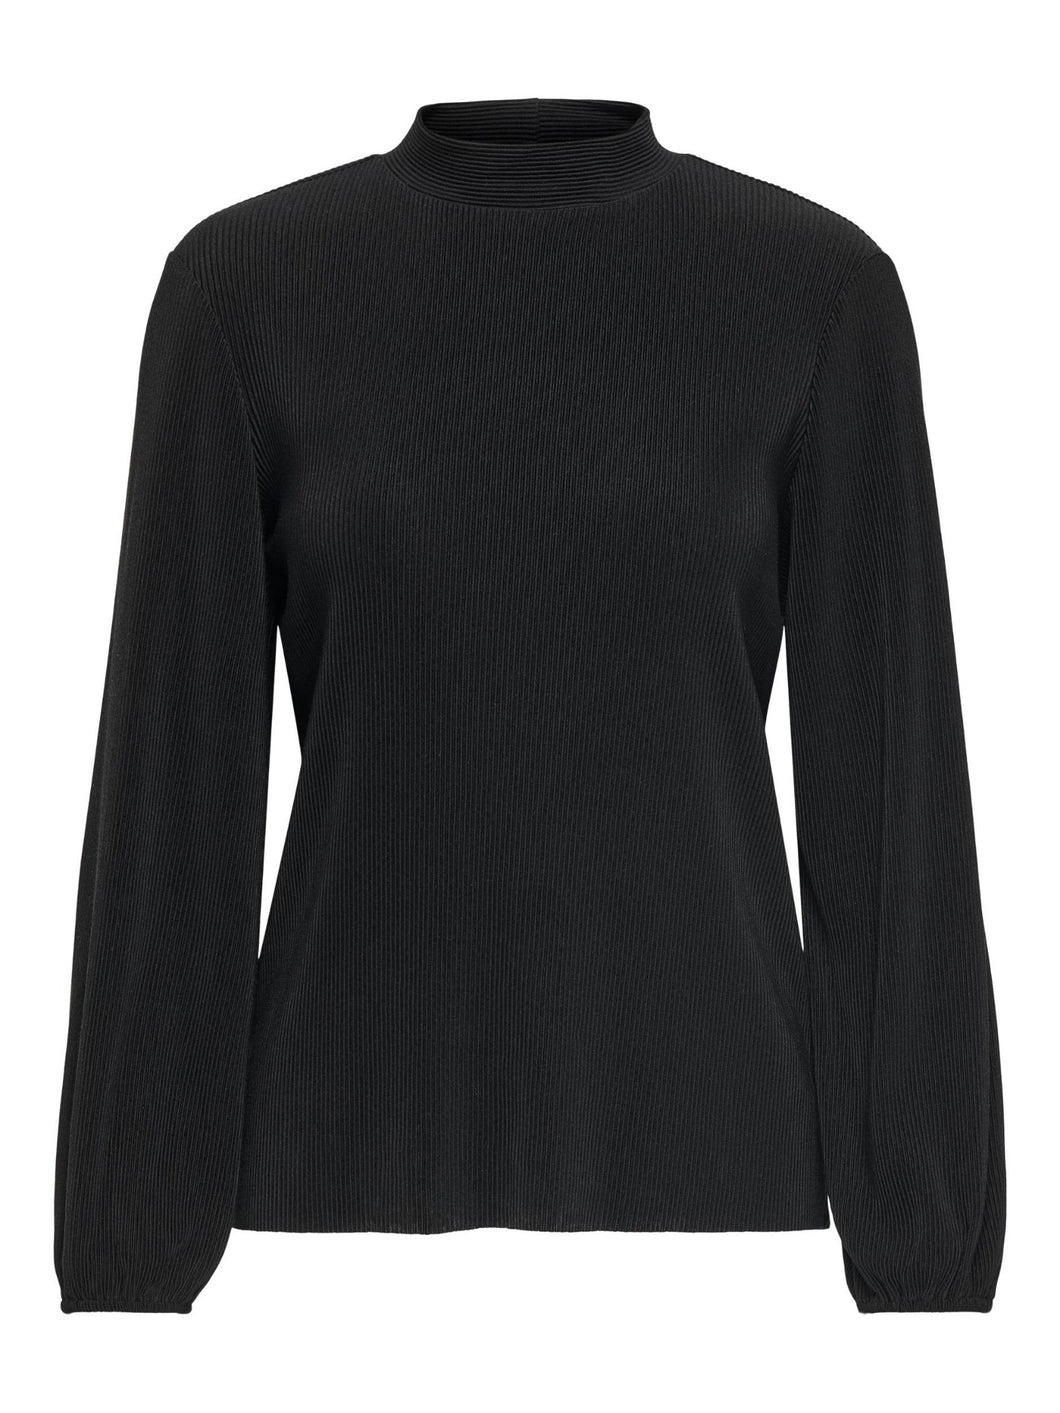 Manhattan Esmarilla Top - Black / XS - TOPPAR 15220573, DAM,